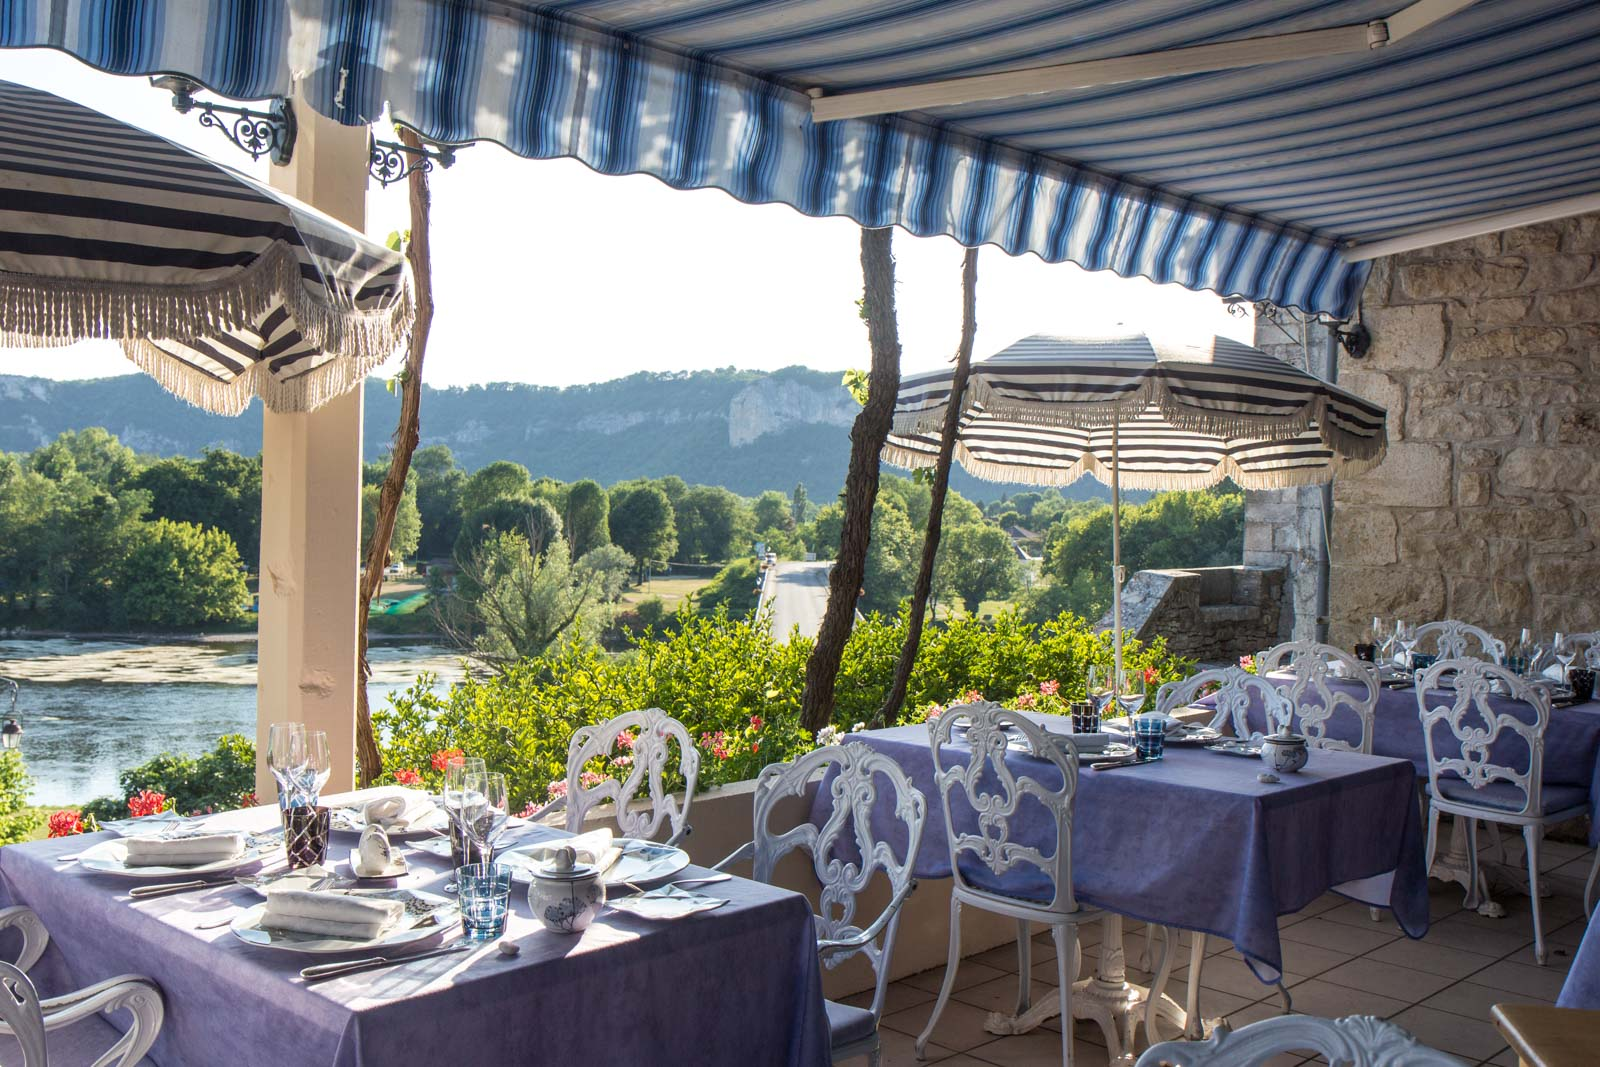 Hotel La Terrasse Meyronne My Active Dordogne Trip With Headwater Holidays In France